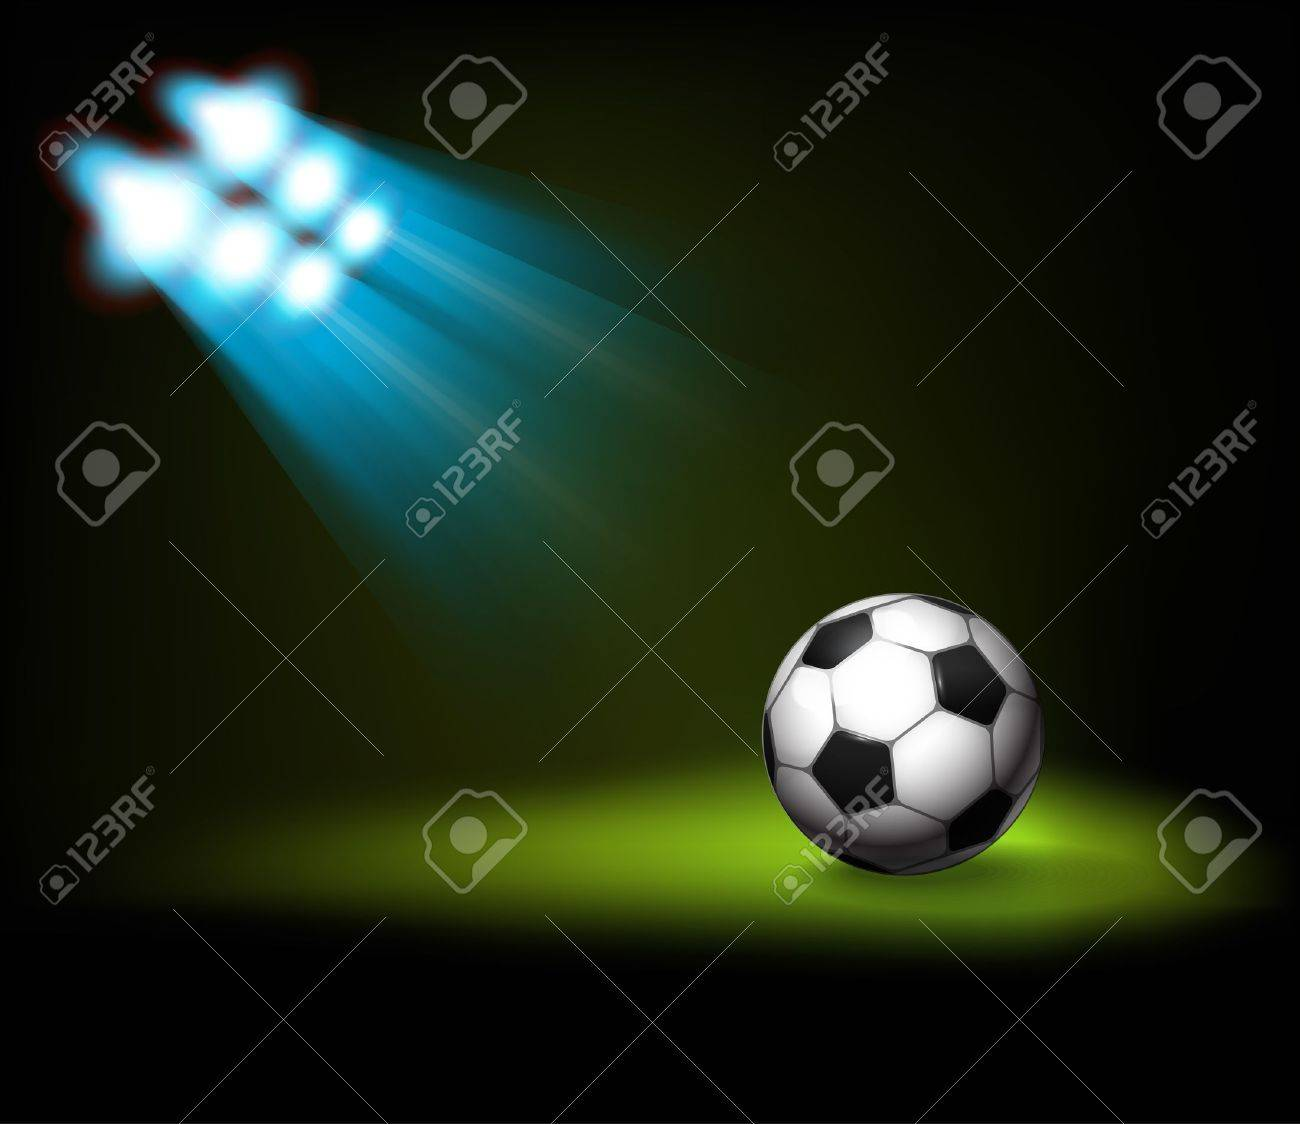 Bright spot lights and illuminated soccer football ball Template for a content Stock Vector - 14121773 & Bright Spot Lights And Illuminated Soccer Football Ball Template ...